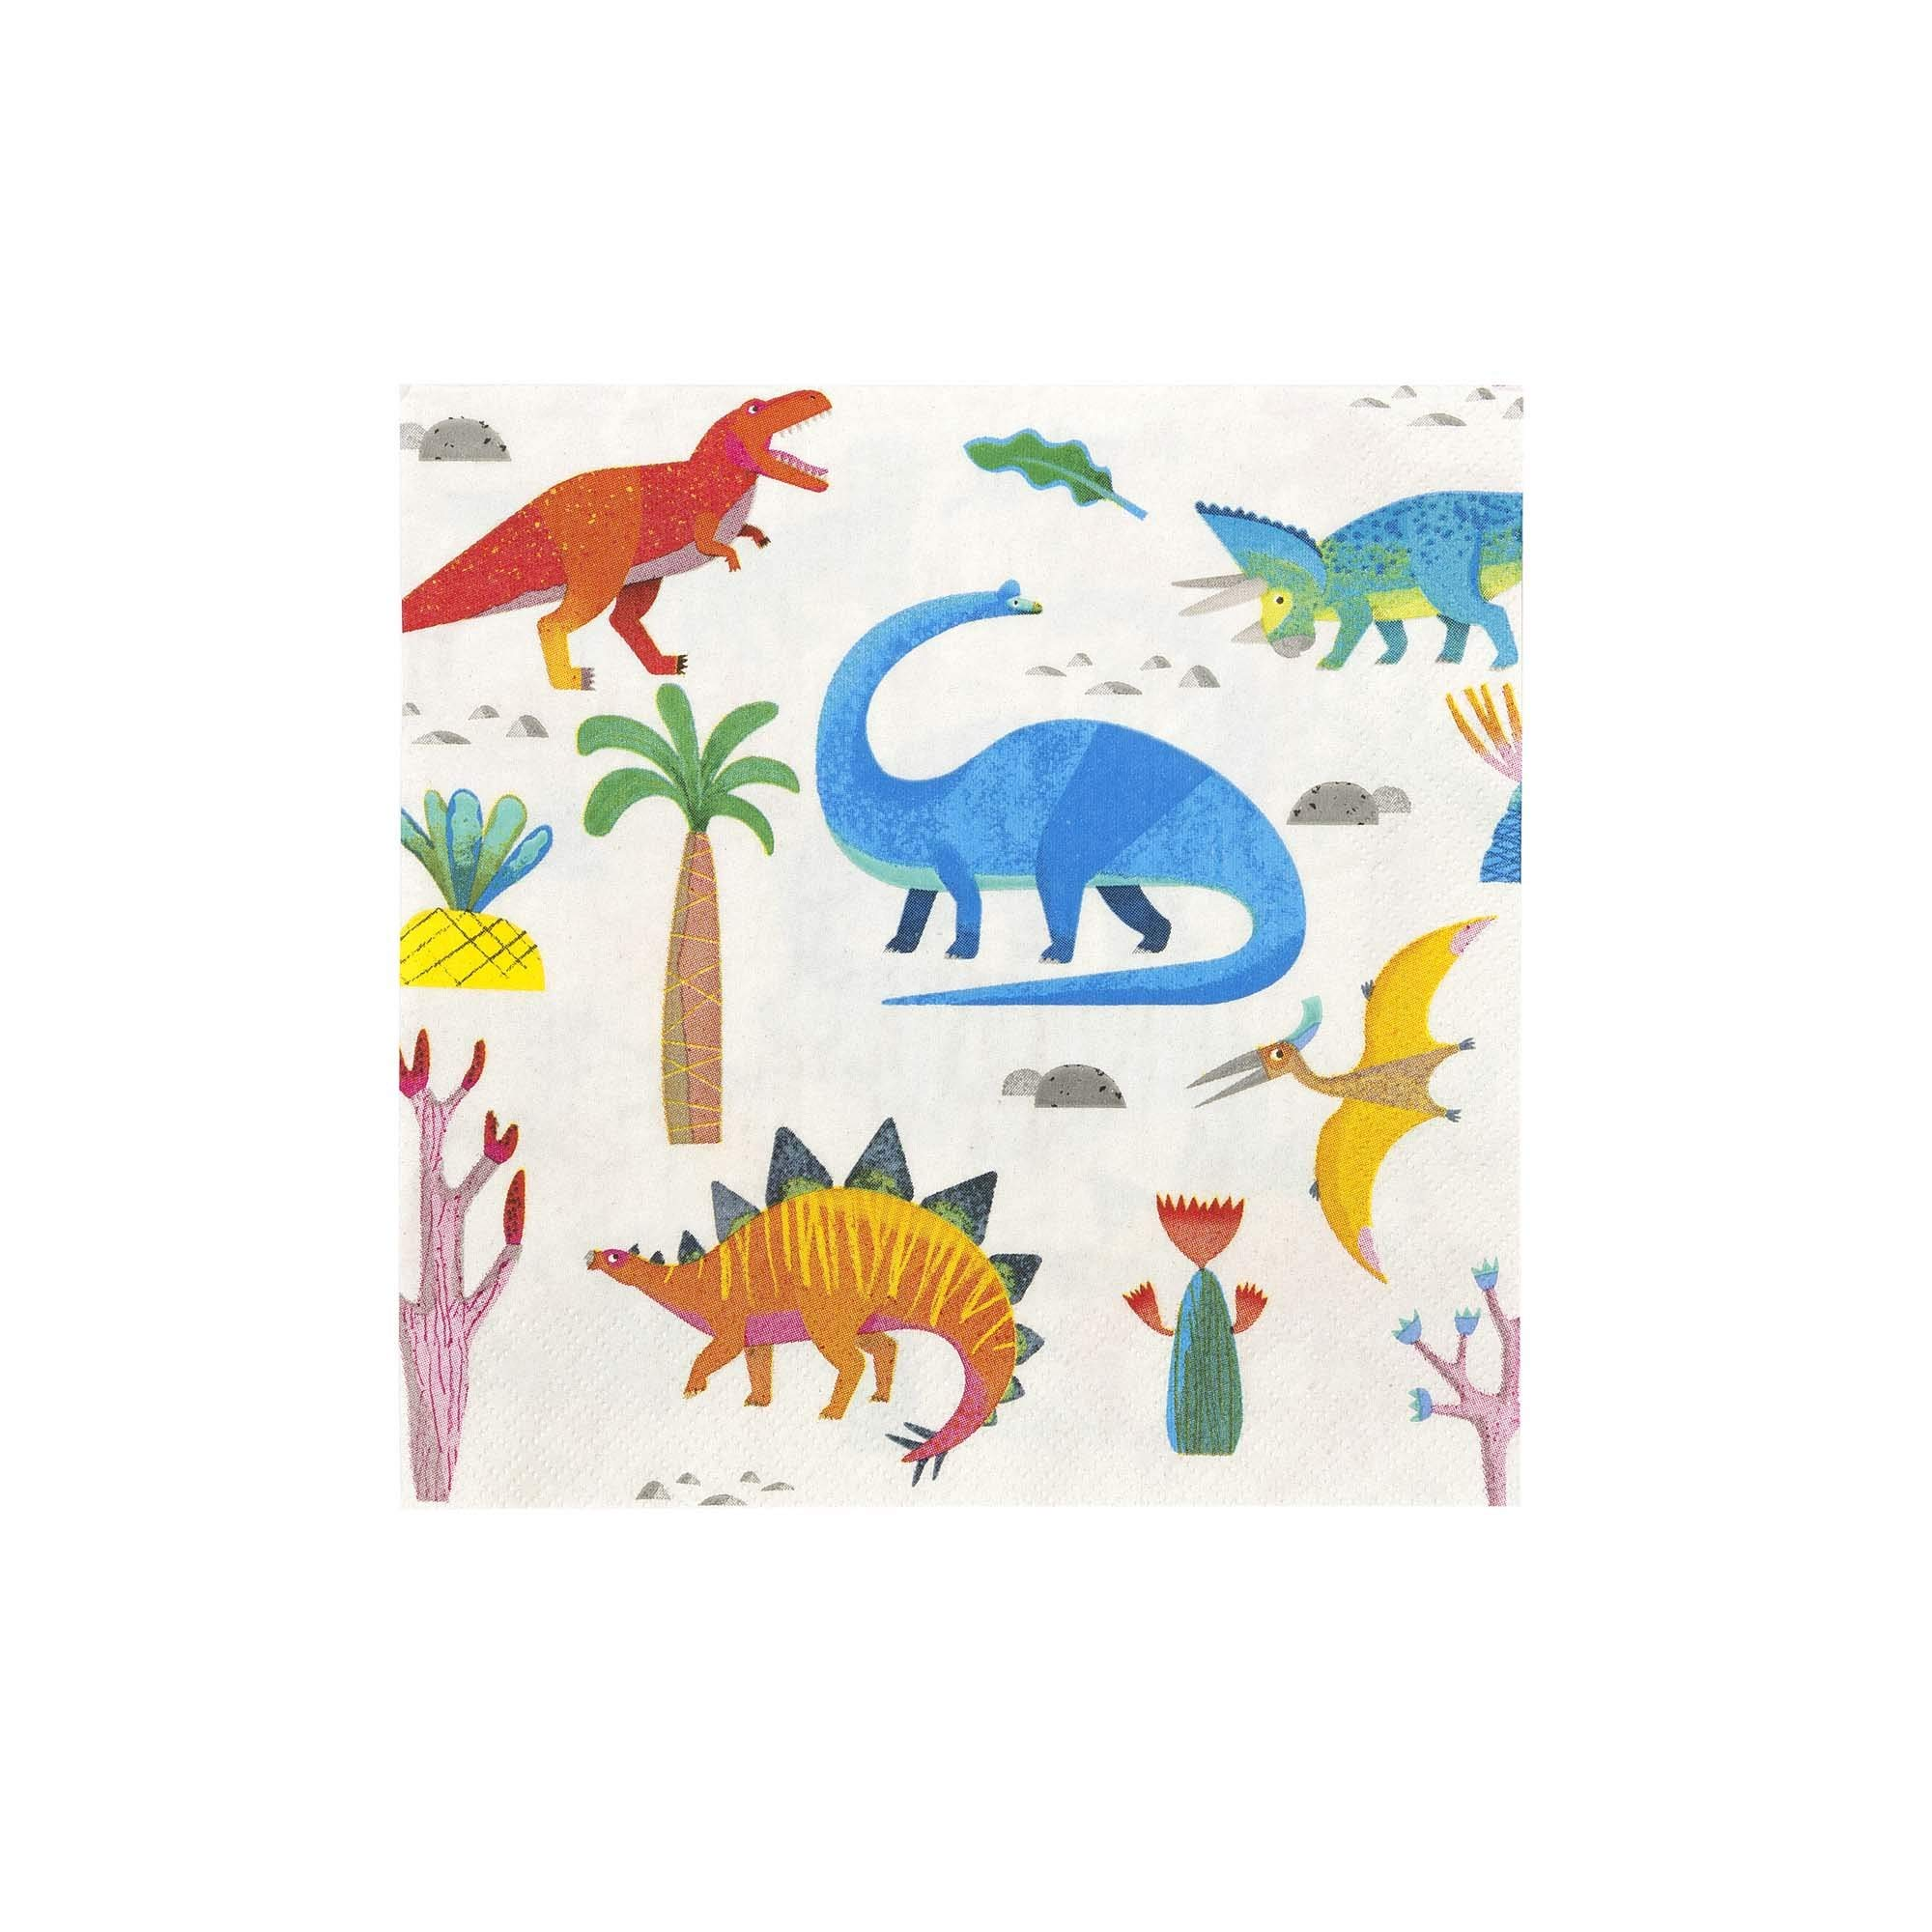 Dinosaur Party Supplies Dinosaur Birthday Decorations Kids Birthday Party Napkins Dinosaur Napkins Paper Napkins 6.5''sq Folded, Pack 40 by Talking Tables